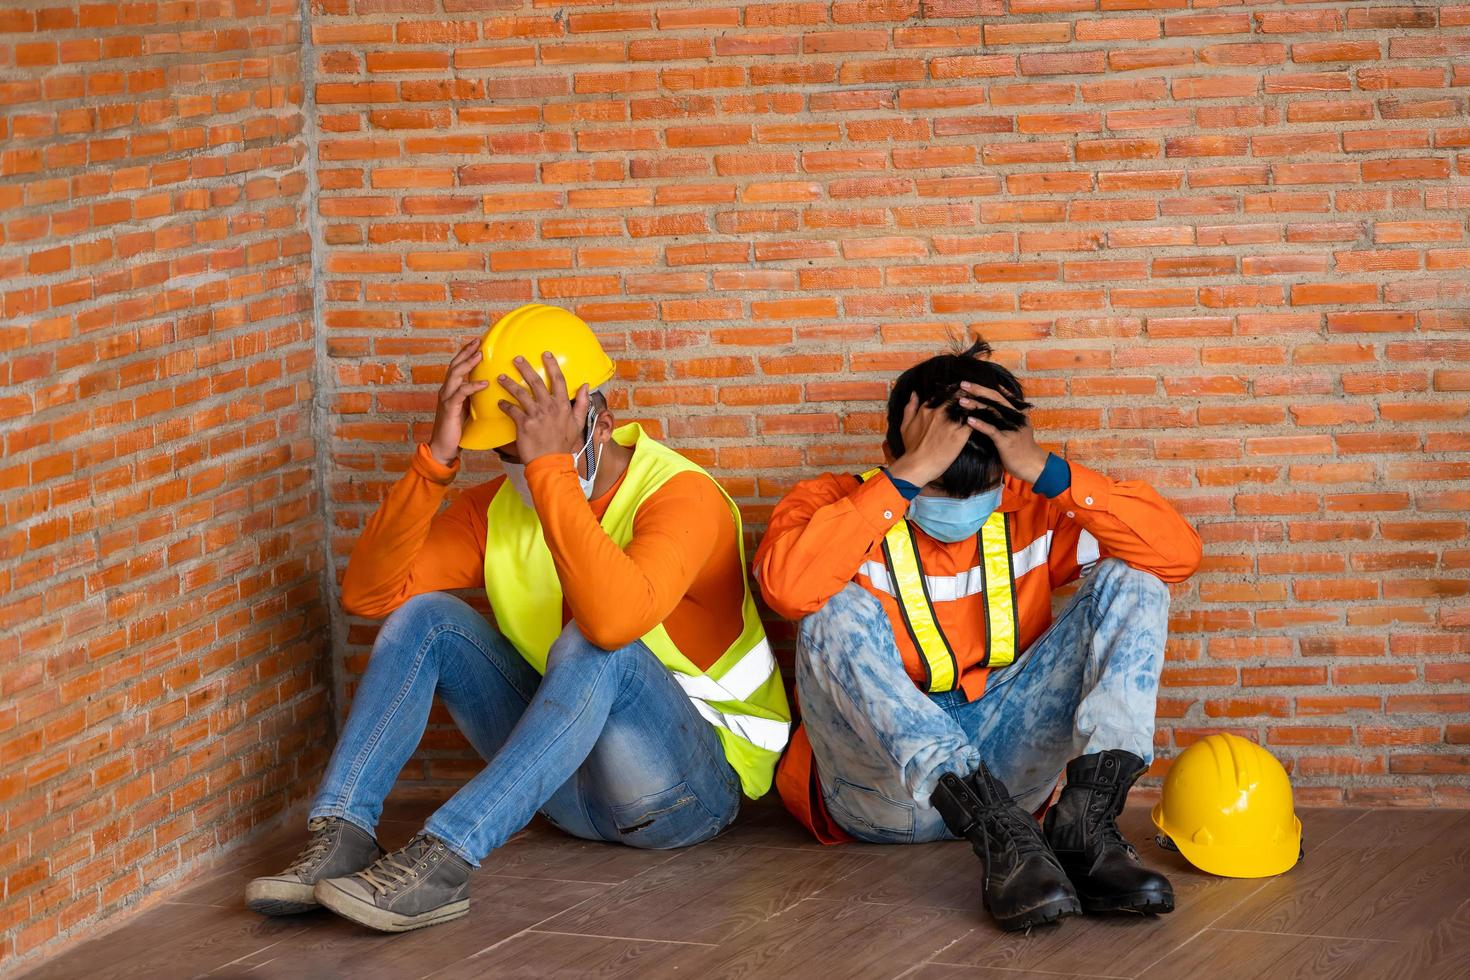 Two men wearing protective equipment next to brick wall photo